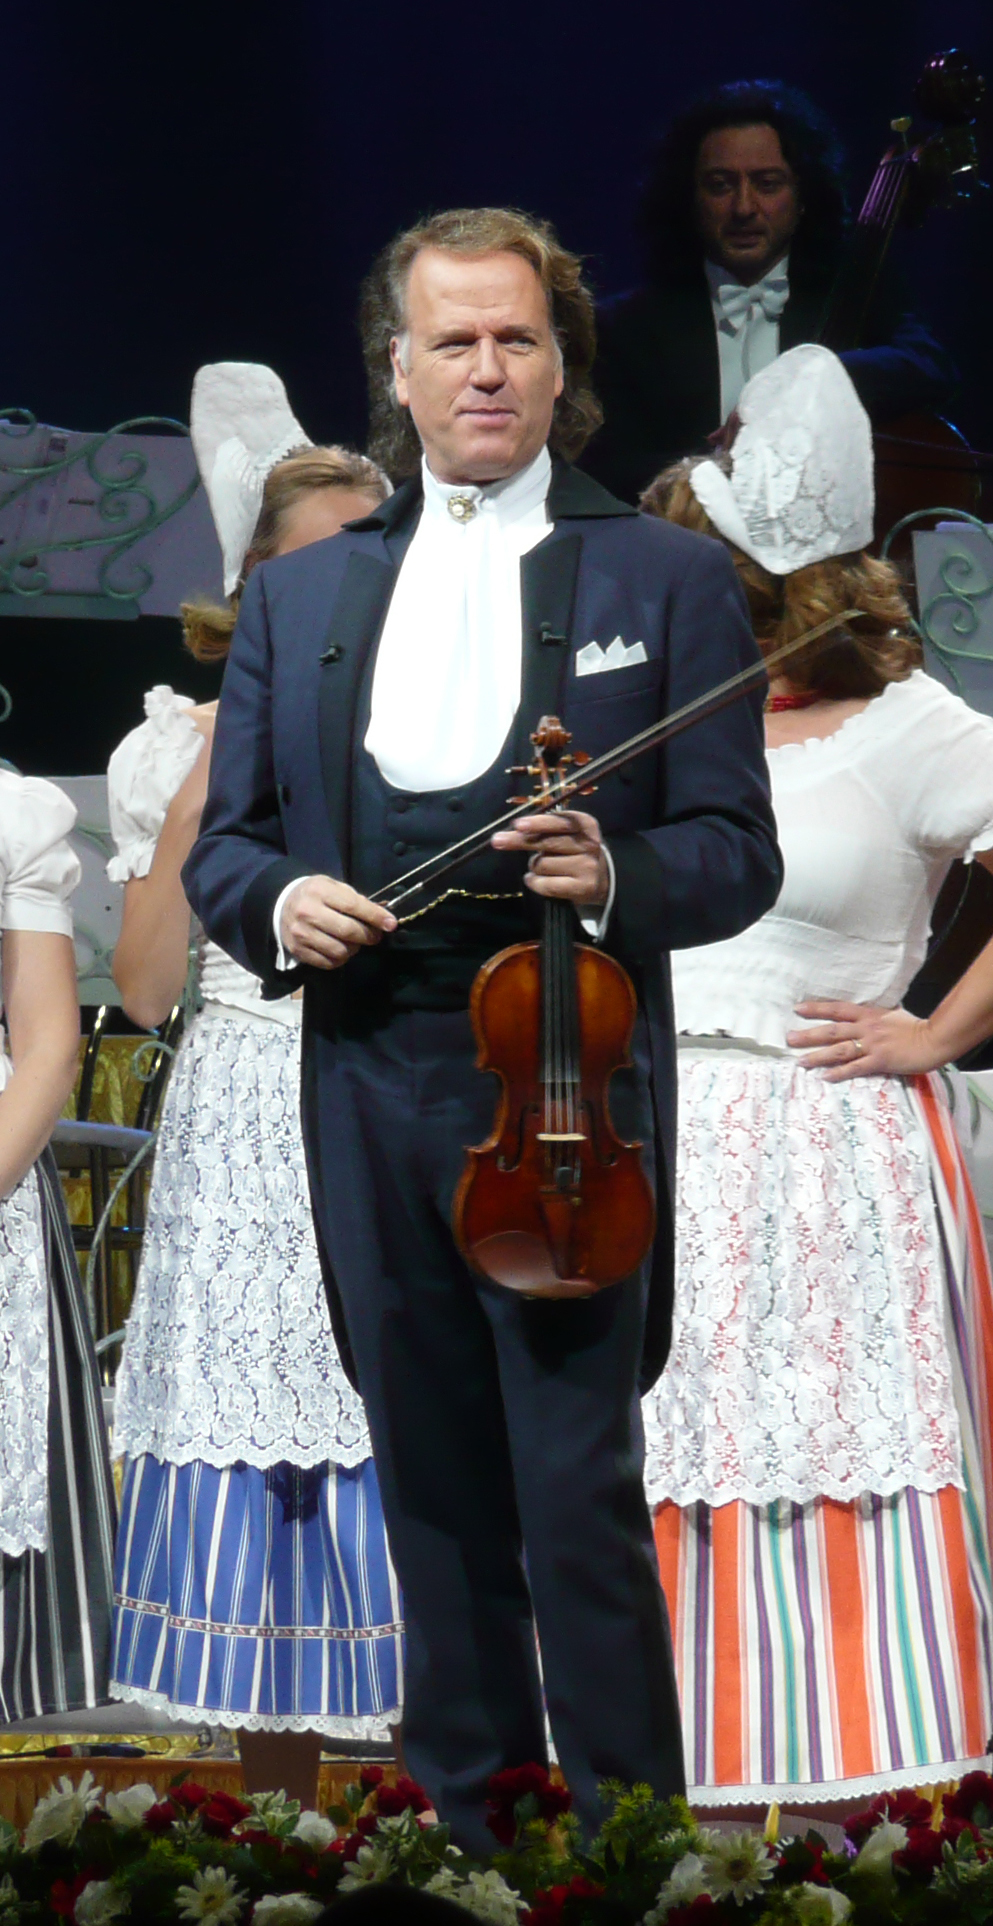 The 69-year old son of father André Rieu sr. and mother(?) André Rieu in 2018 photo. André Rieu earned a 0.271 million dollar salary - leaving the net worth at 40 million in 2018